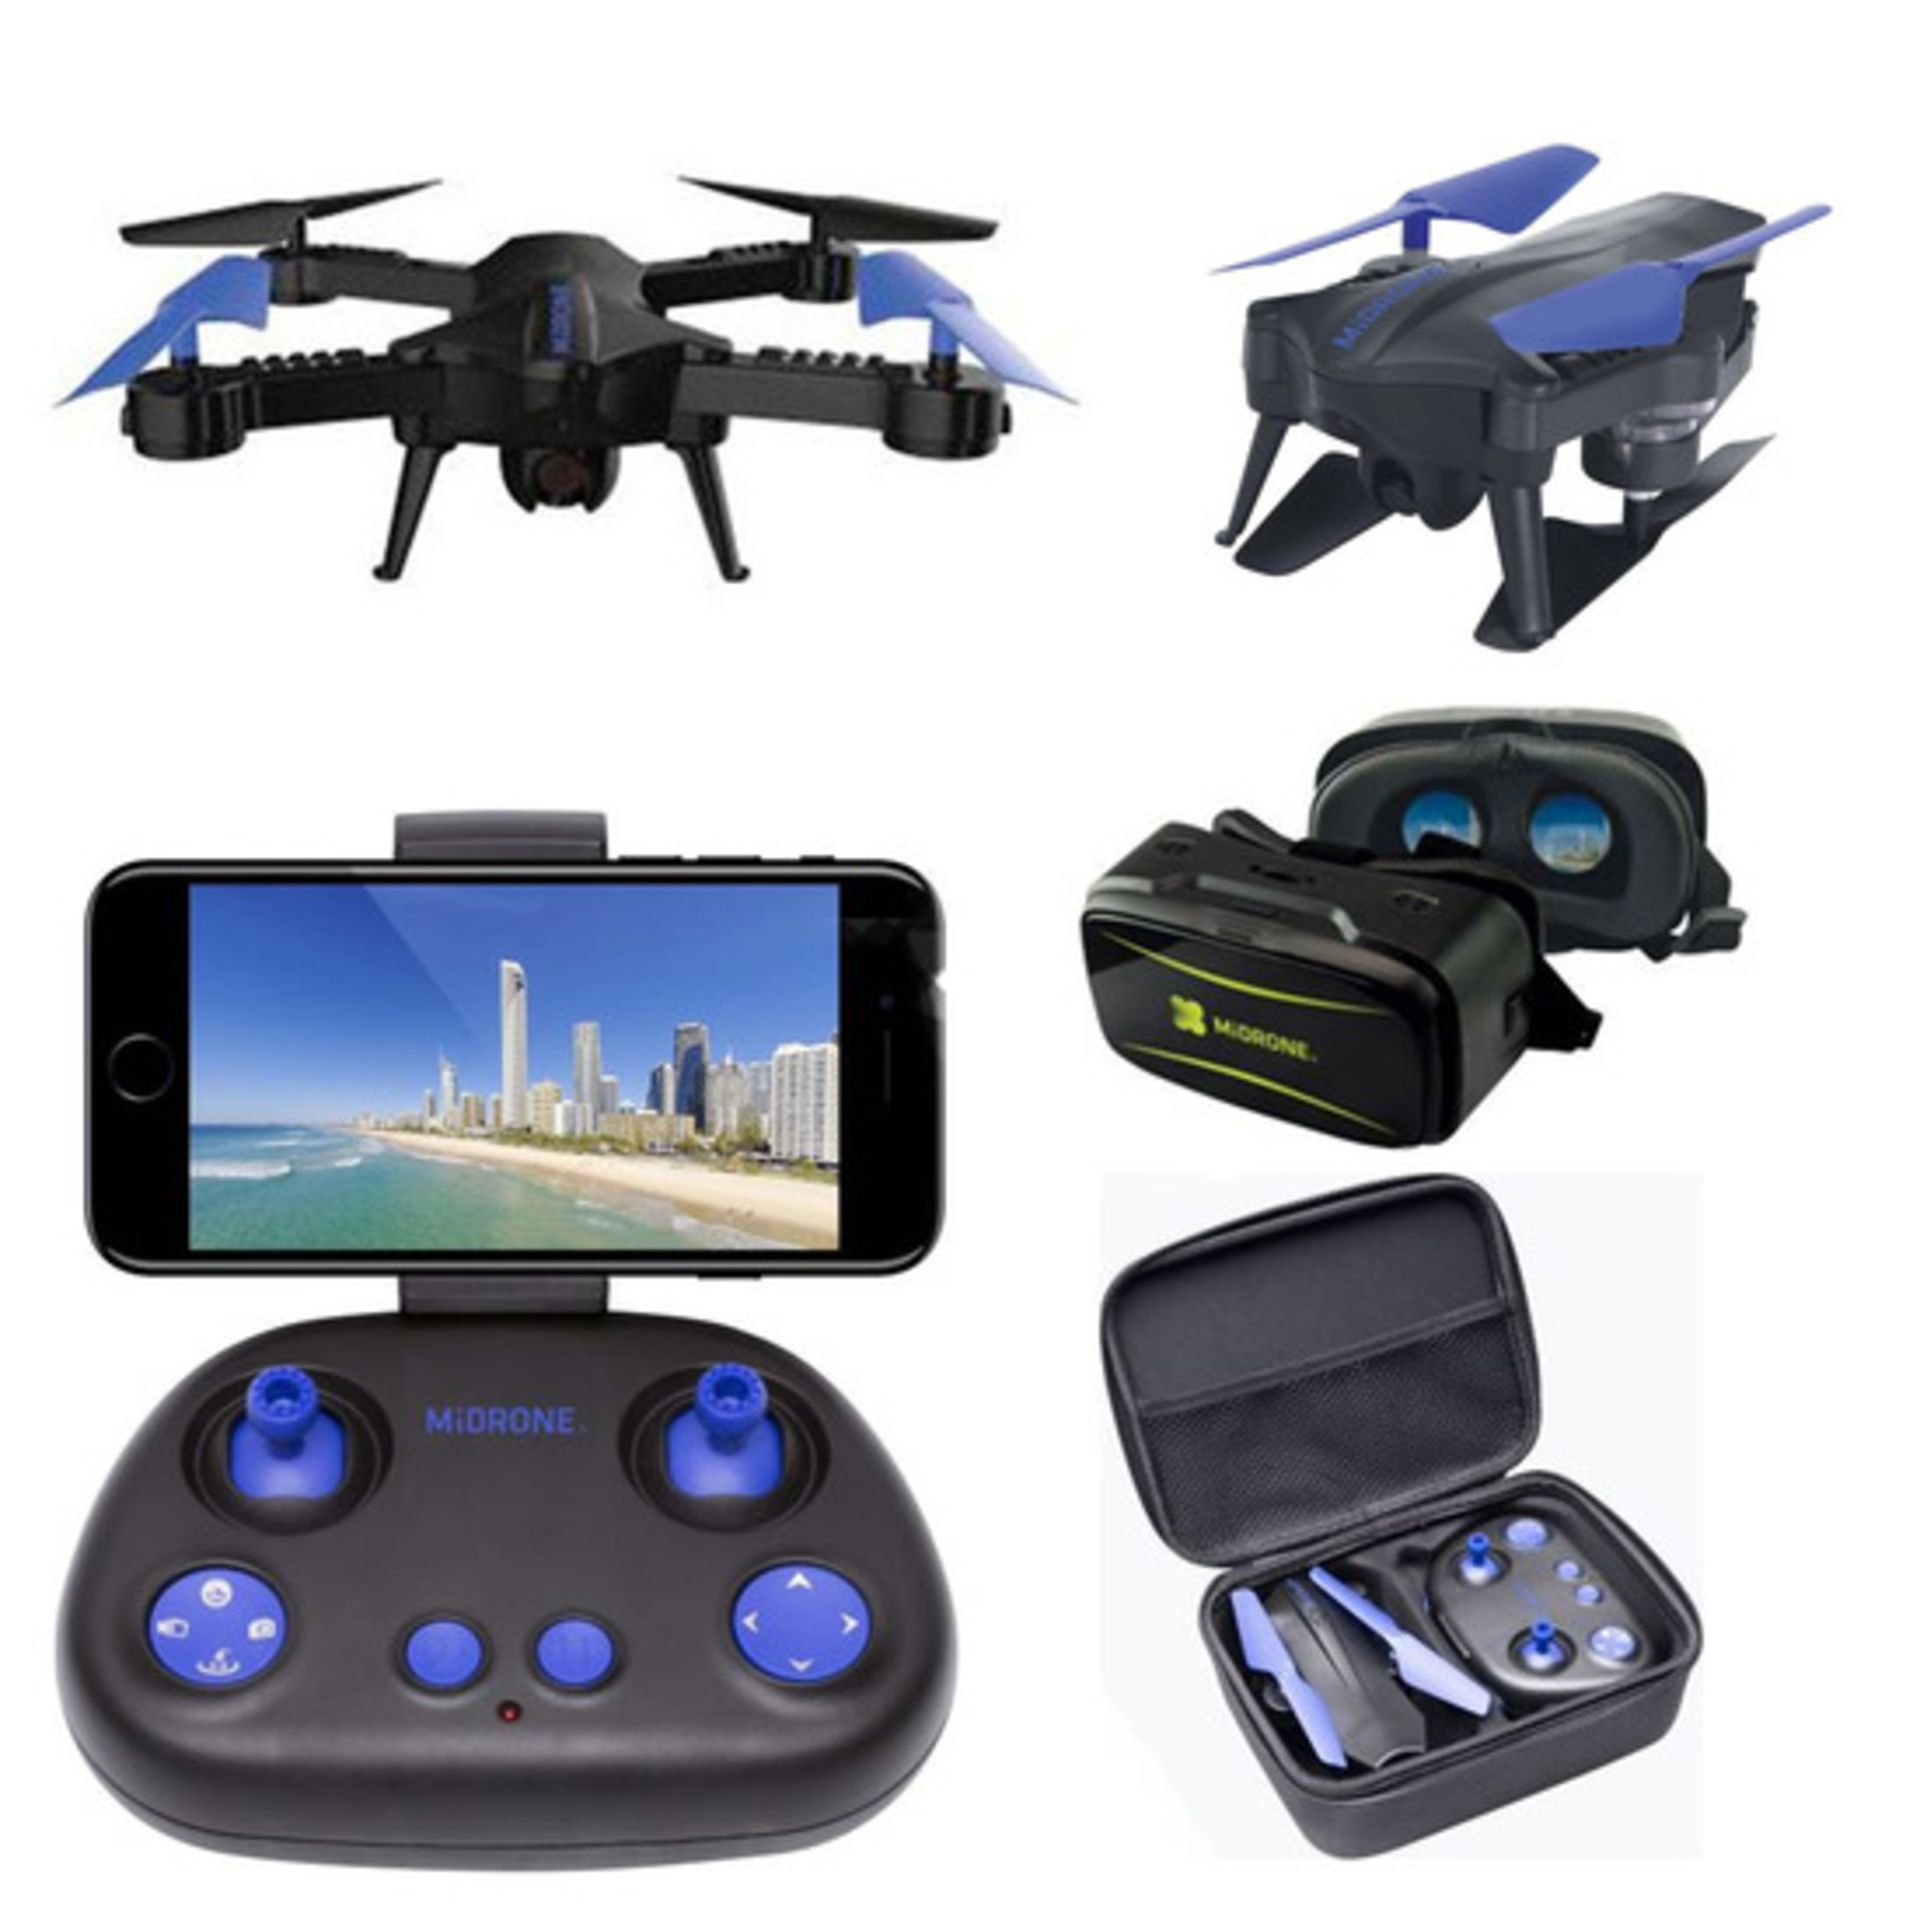 Lot 15783 - V Brand New MiDrone HD WiFi Drone With Intergrated Full HD Camera PLUS VR Kit (Goggles & Case) -